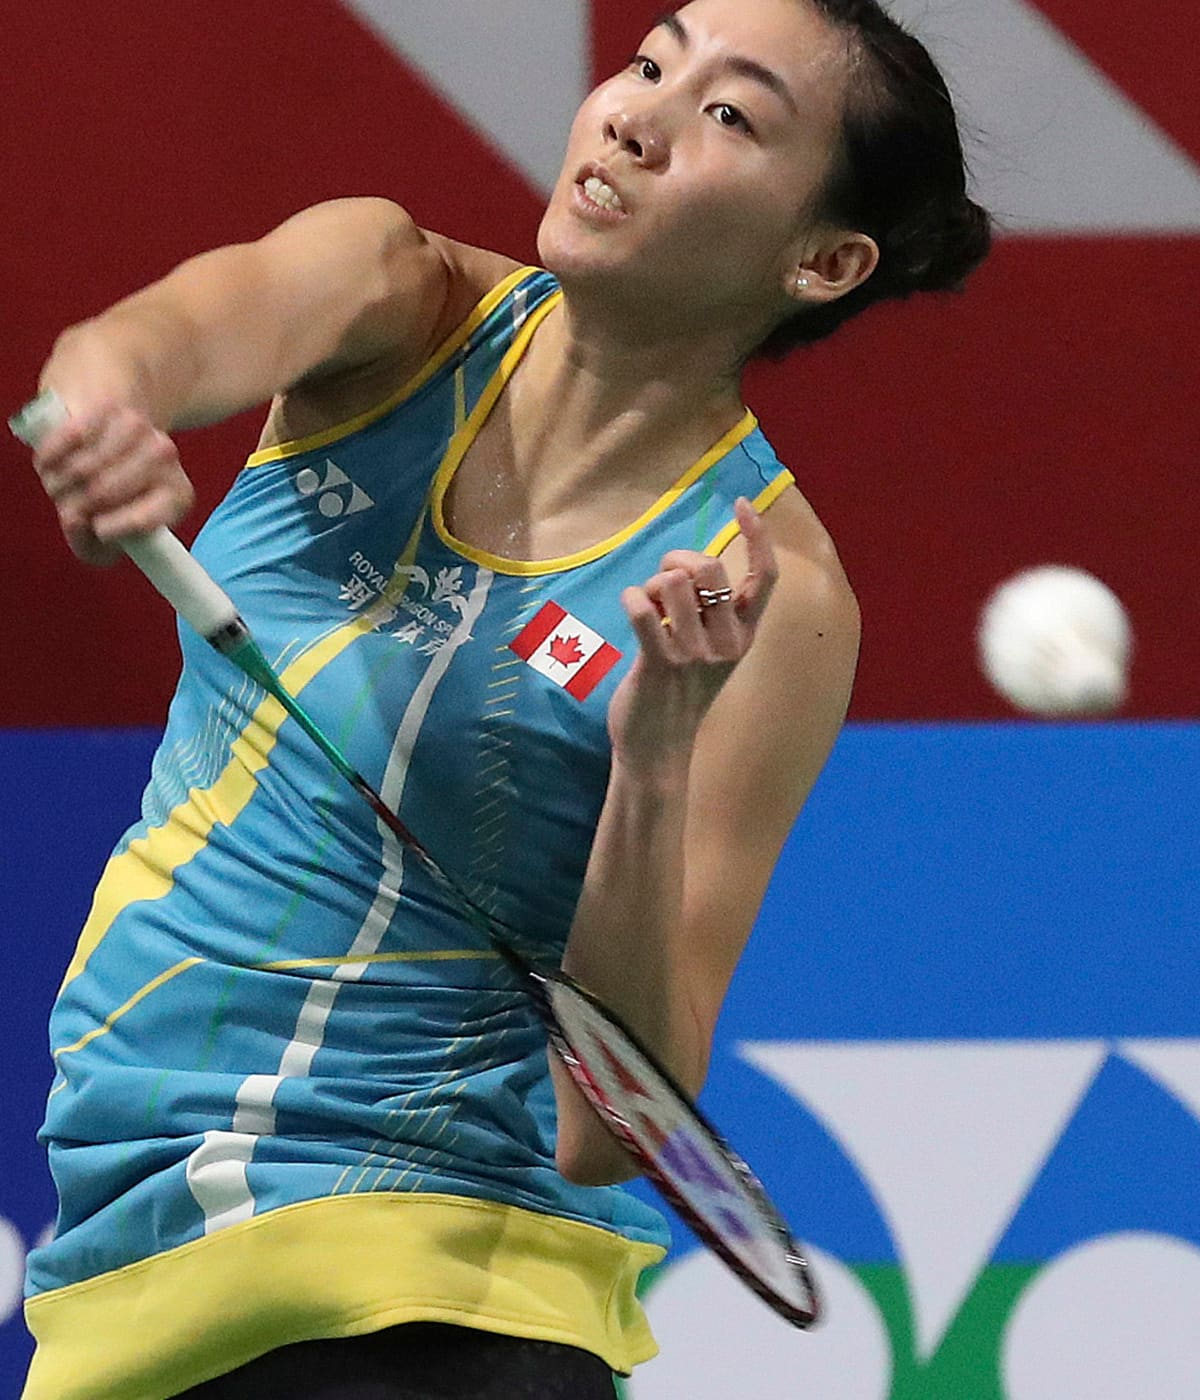 I'm top 10 in the world in badminton, but my sport struggles in Canada